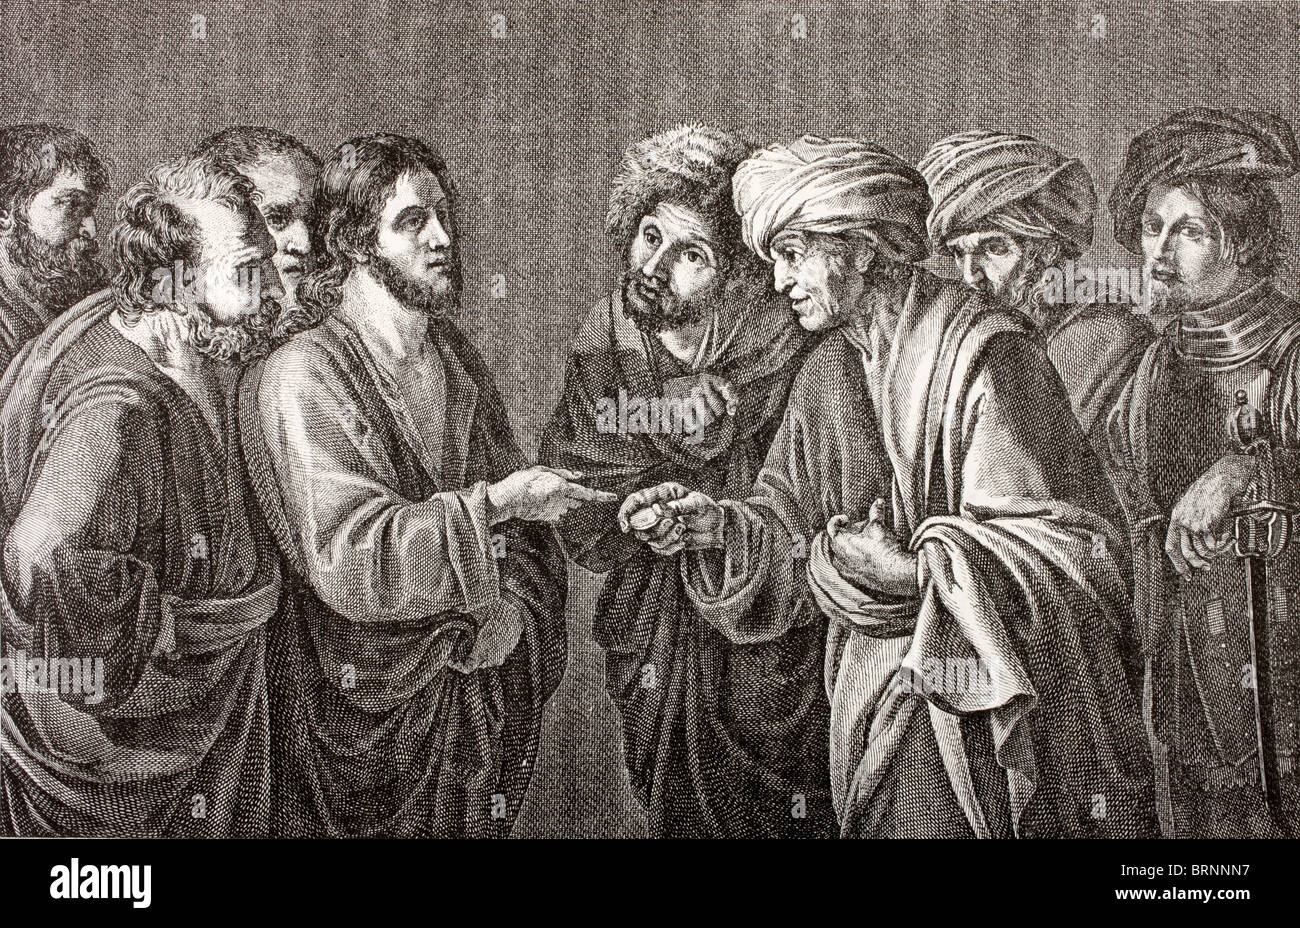 And Jesus answering said unto them, Render to Caesar the things that are Caesar's, and to God the things that - Stock Image